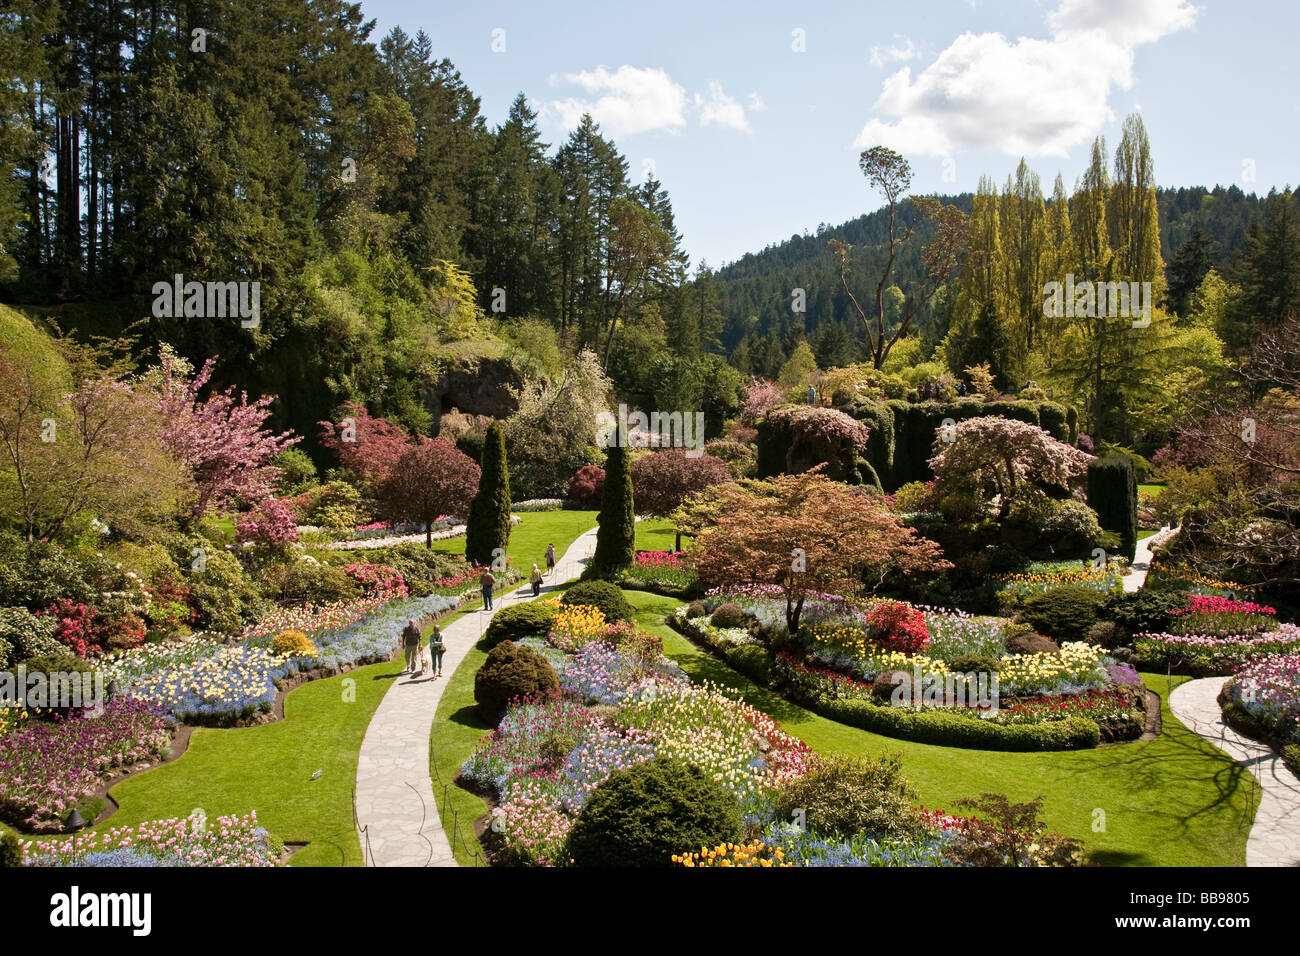 Path In Sunken Gardens In Stock Photos & Path In Sunken Gardens In ...